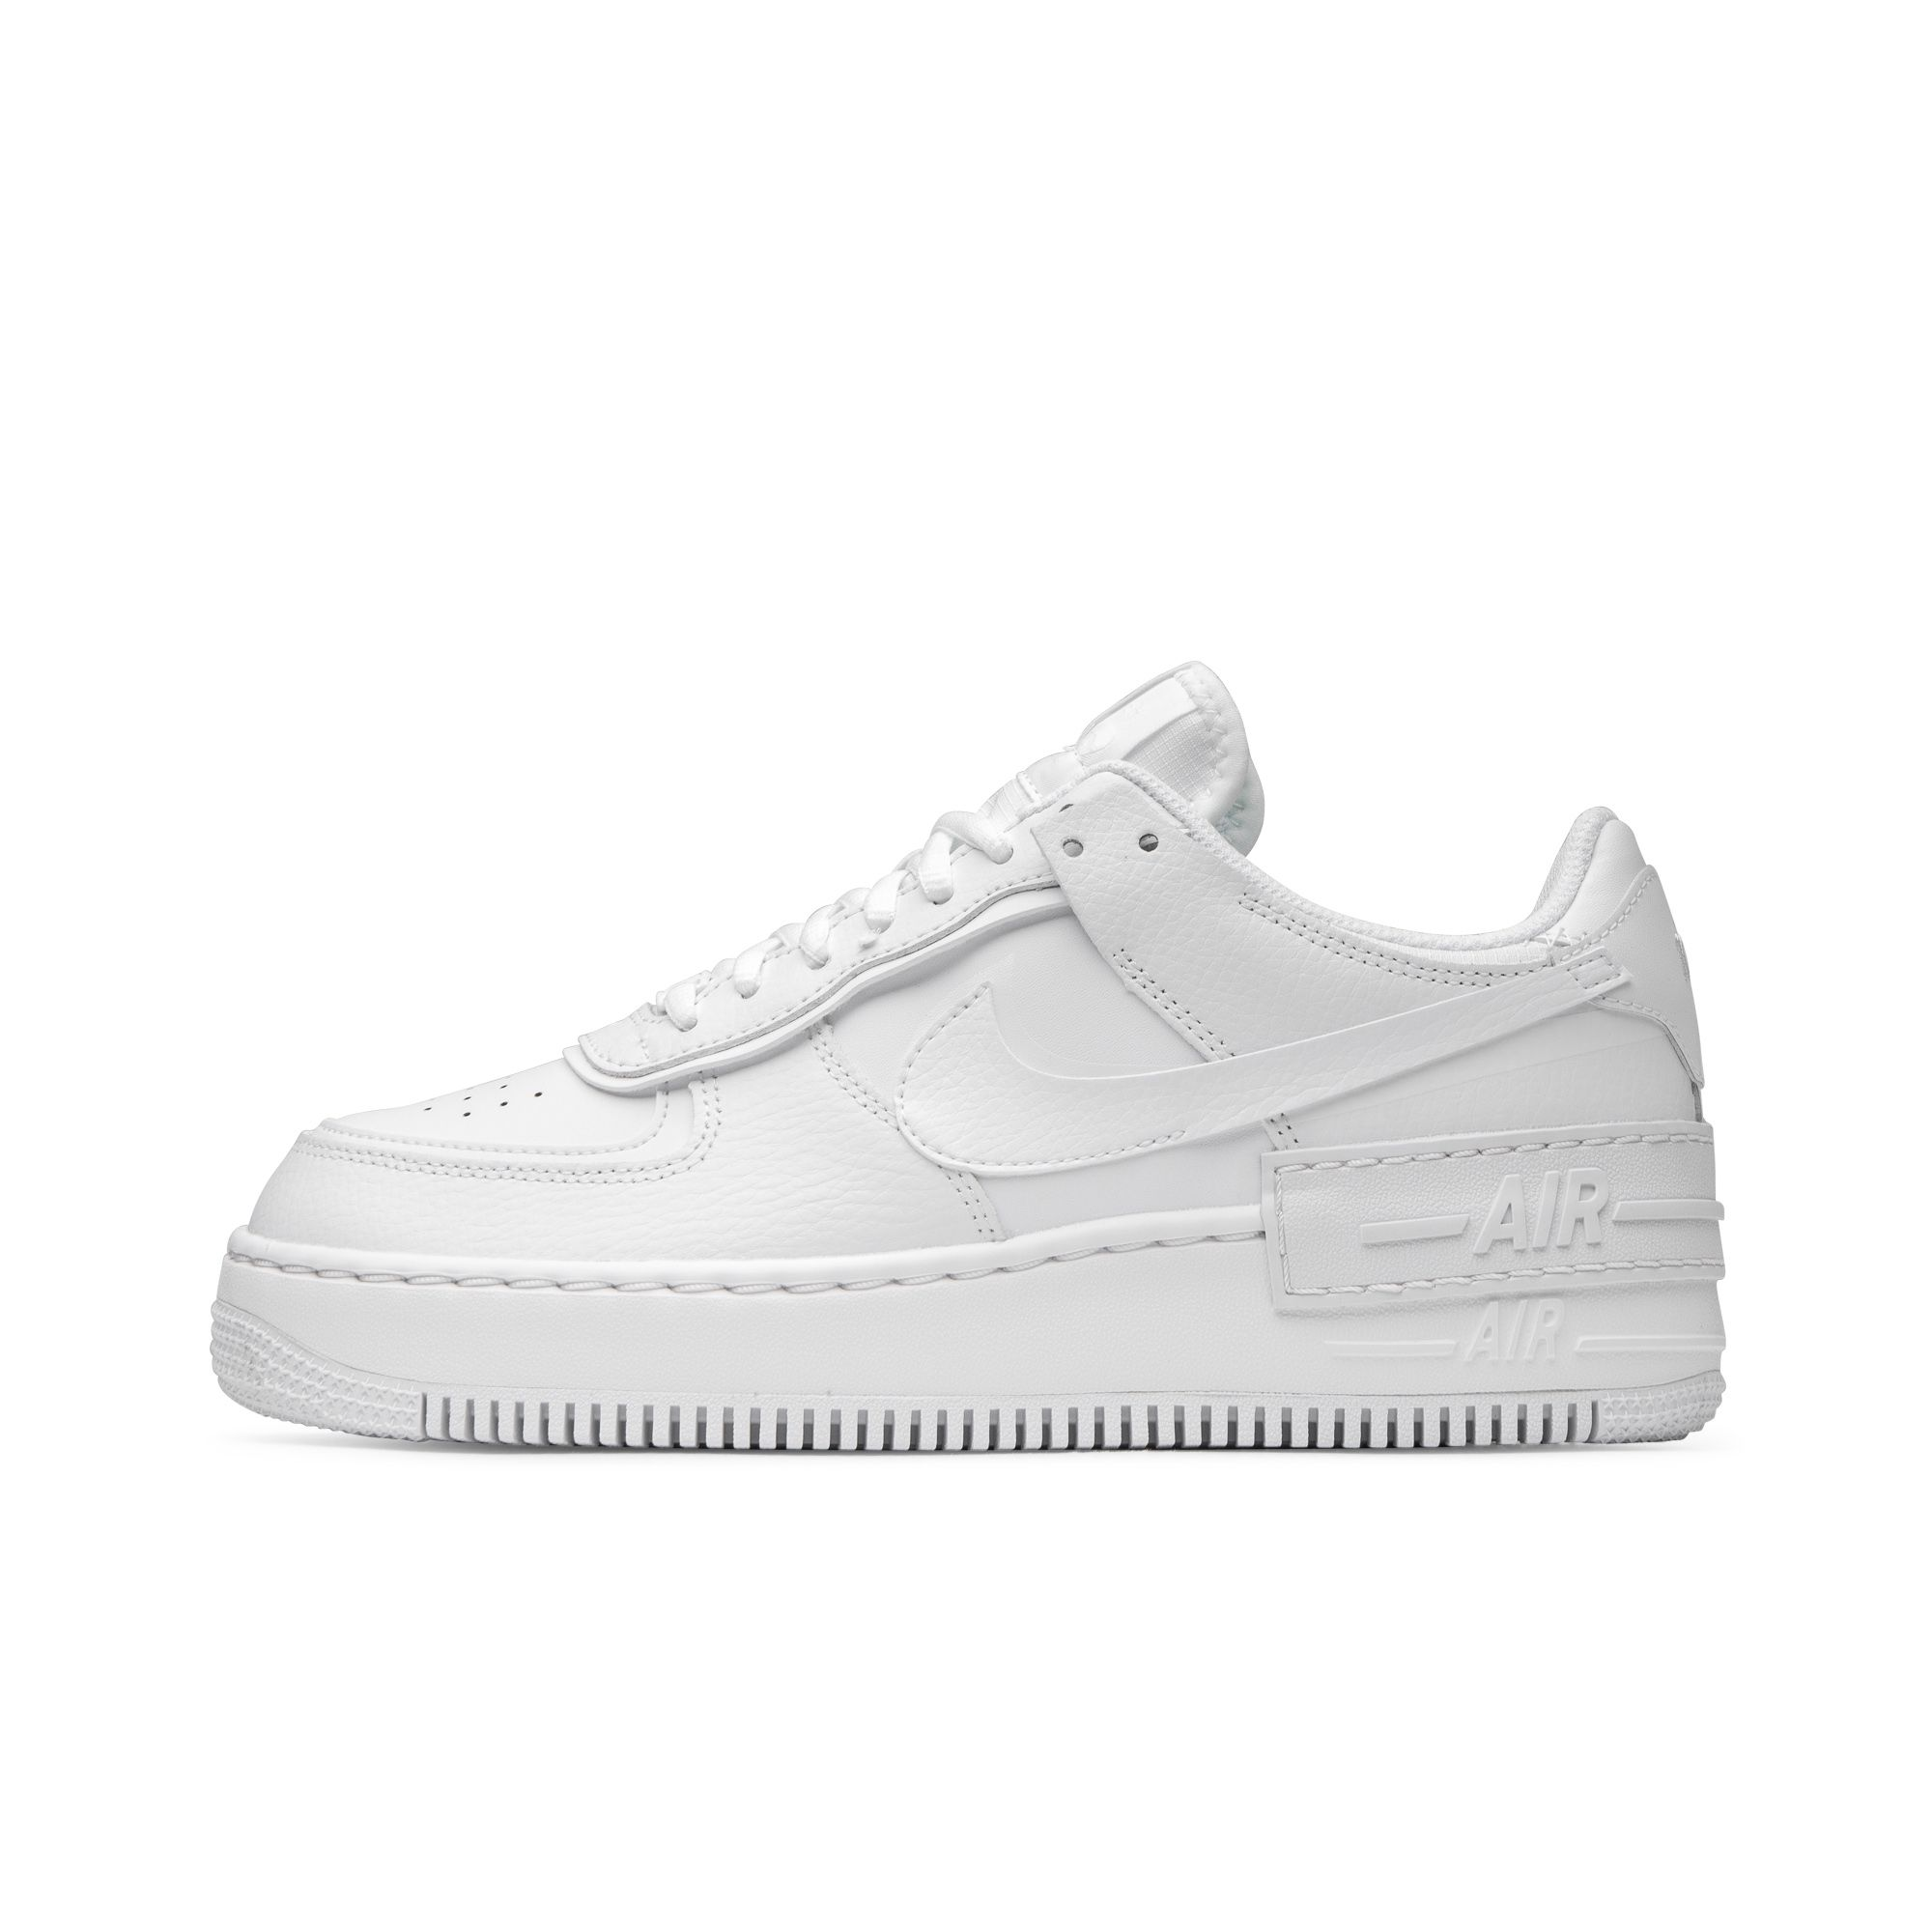 Nike Air Force 1 Shadow Blancas